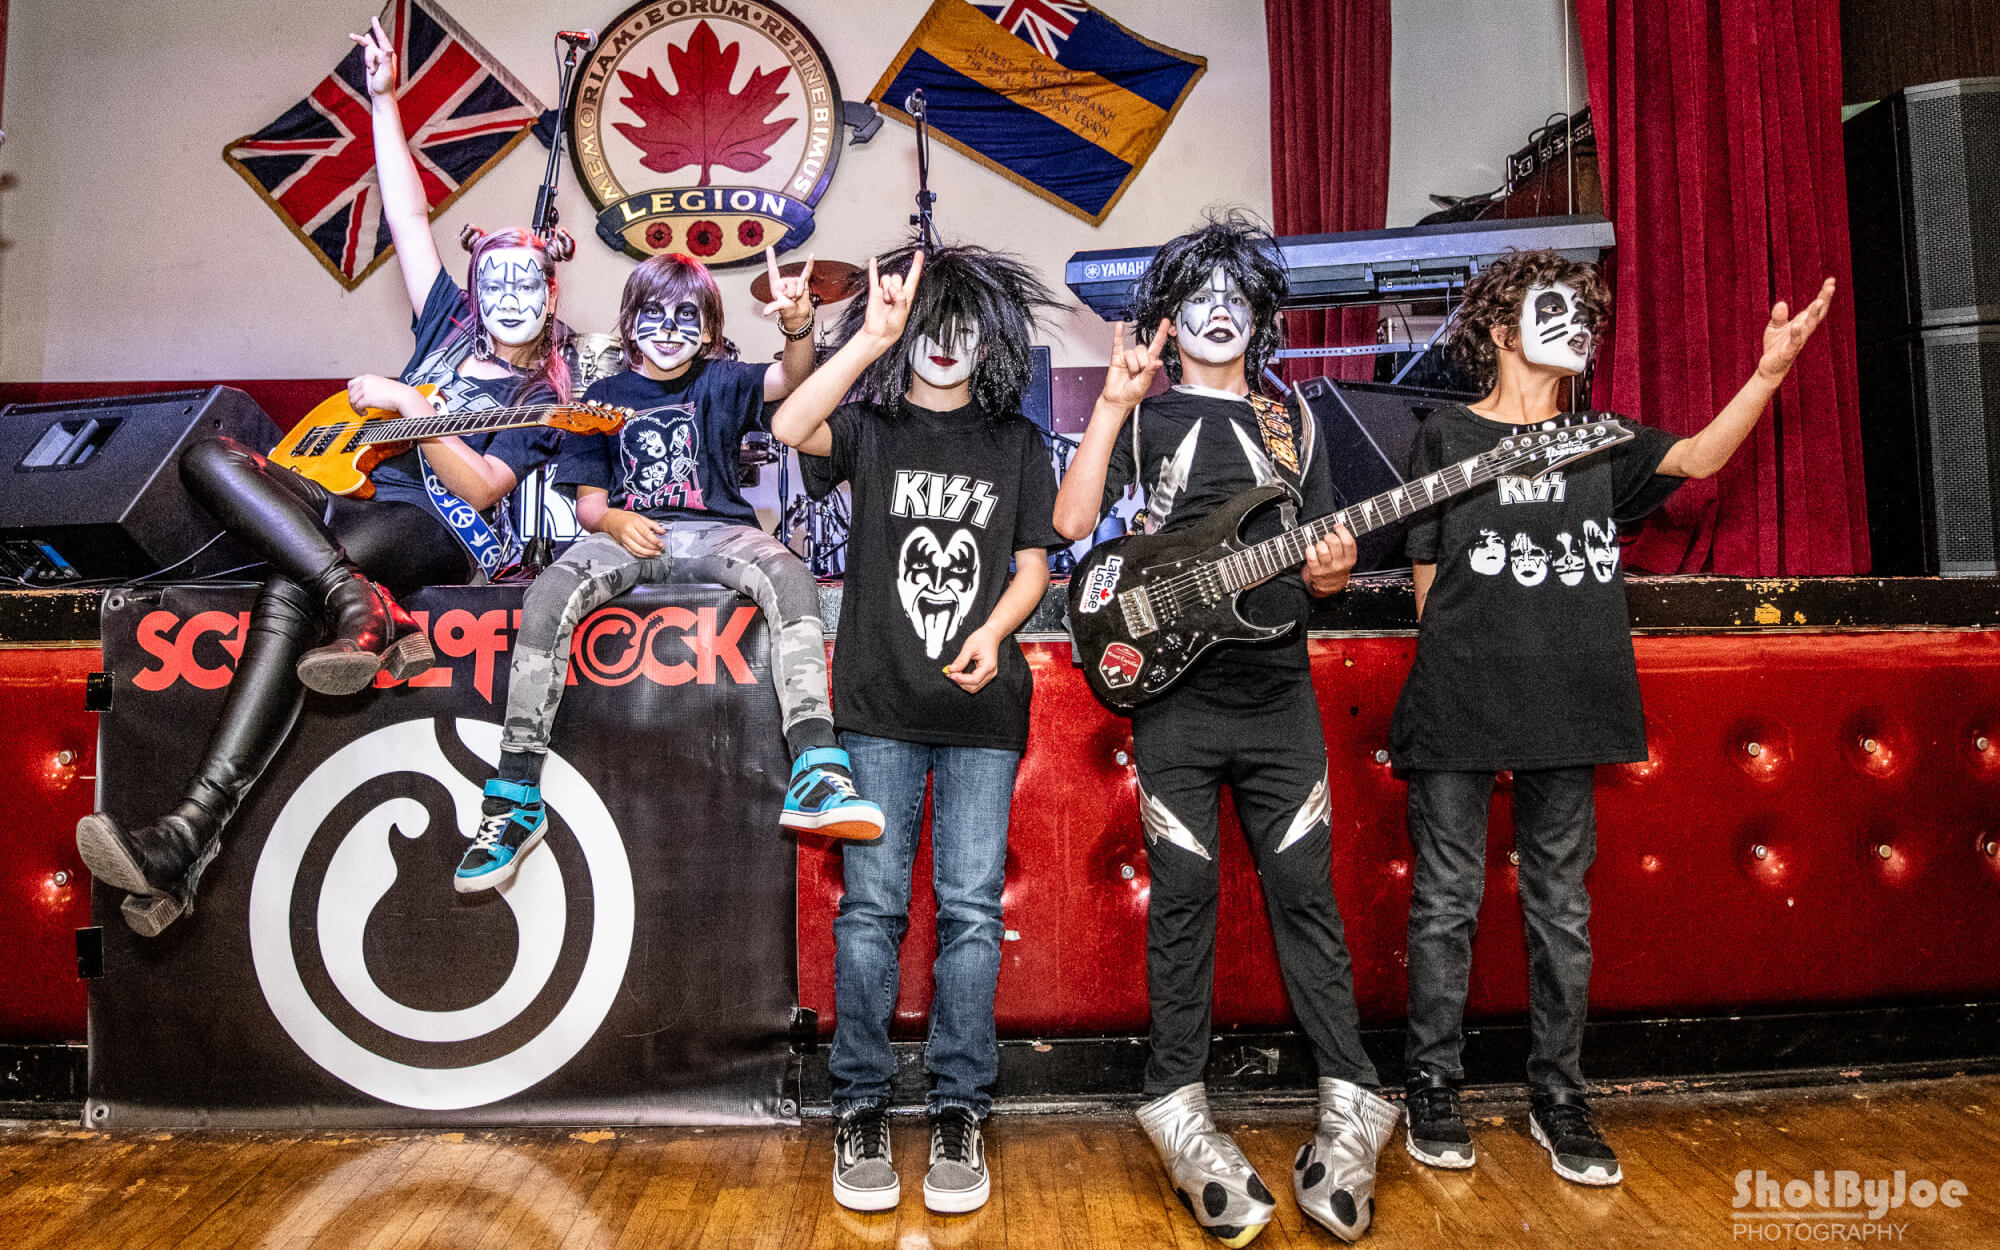 Our Rock 101 kids at the KISS show.